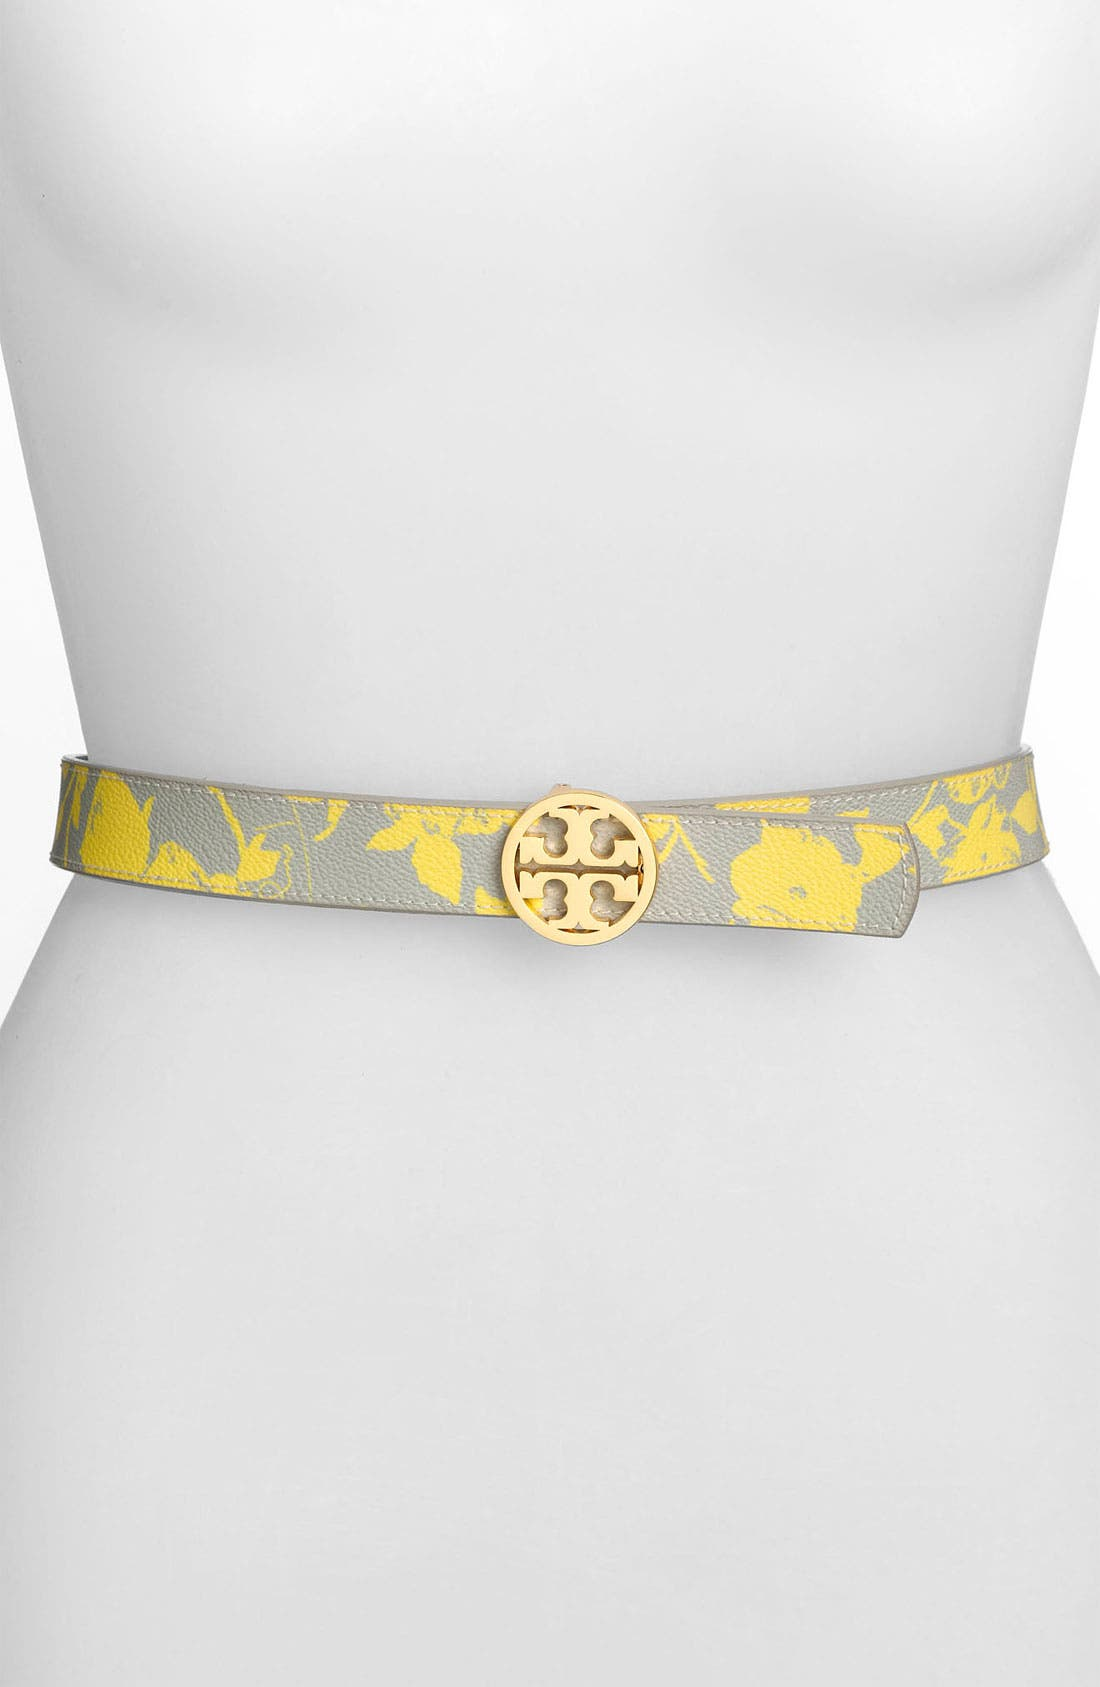 Alternate Image 1 Selected - Tory Burch 'Classic Tory' Reversible Belt